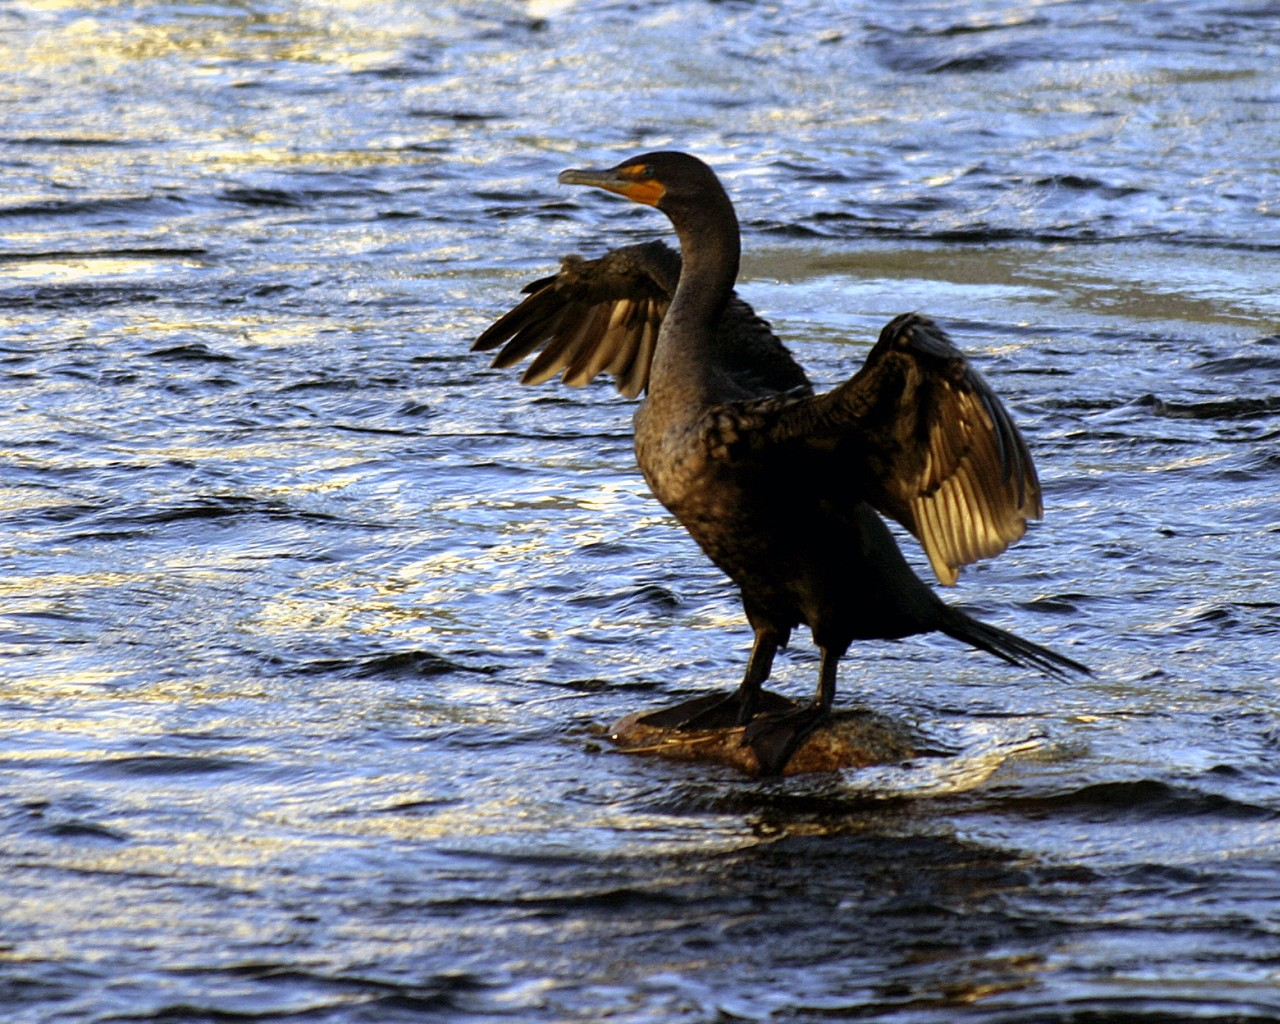 PicturesPool: Beautiful Water Birds pictures